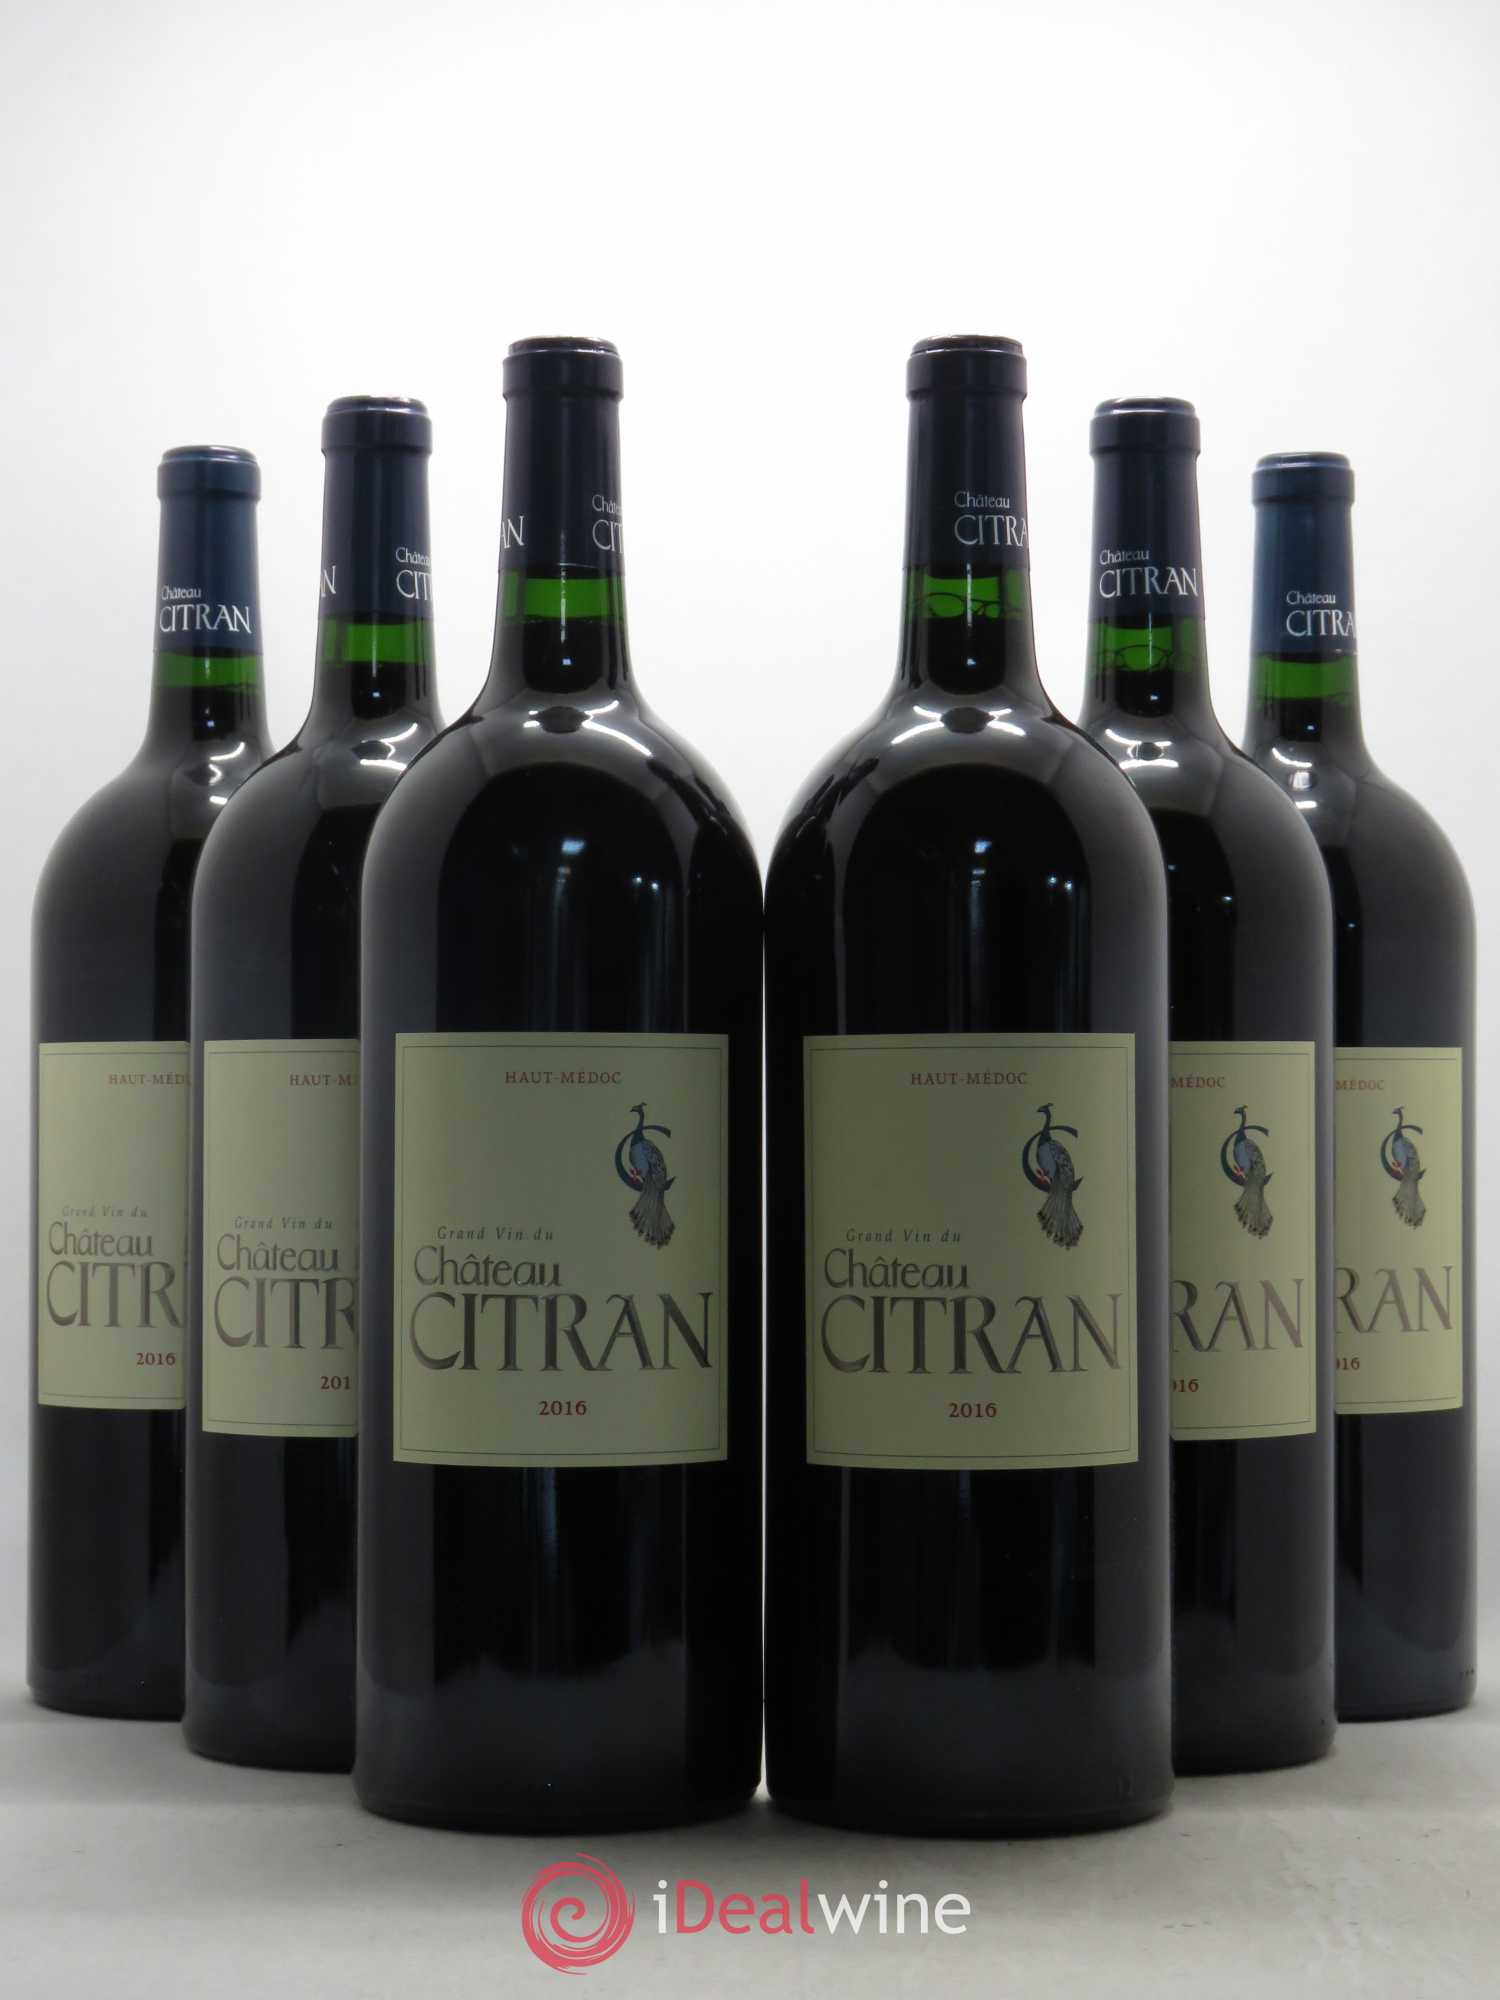 Château Citran Cru Bourgeois  2016 - Lot of 6 Magnums